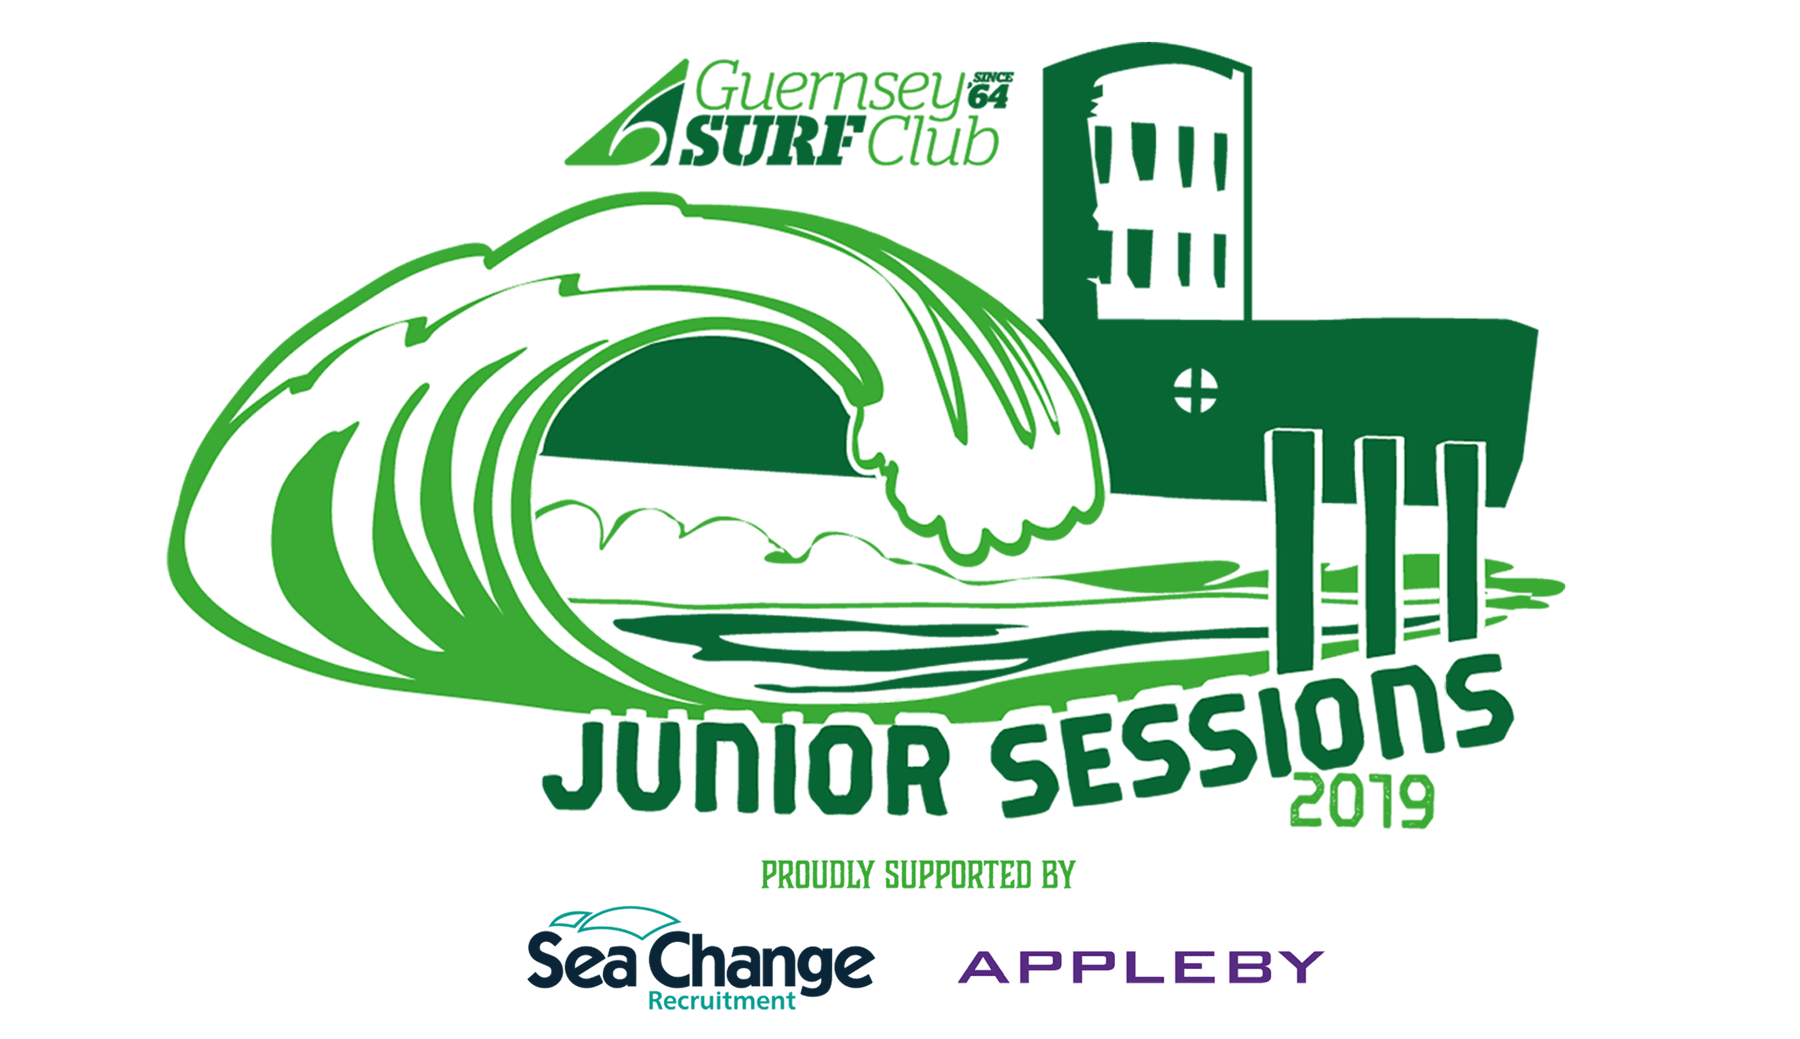 Junior Sessions 2019 - Event 2